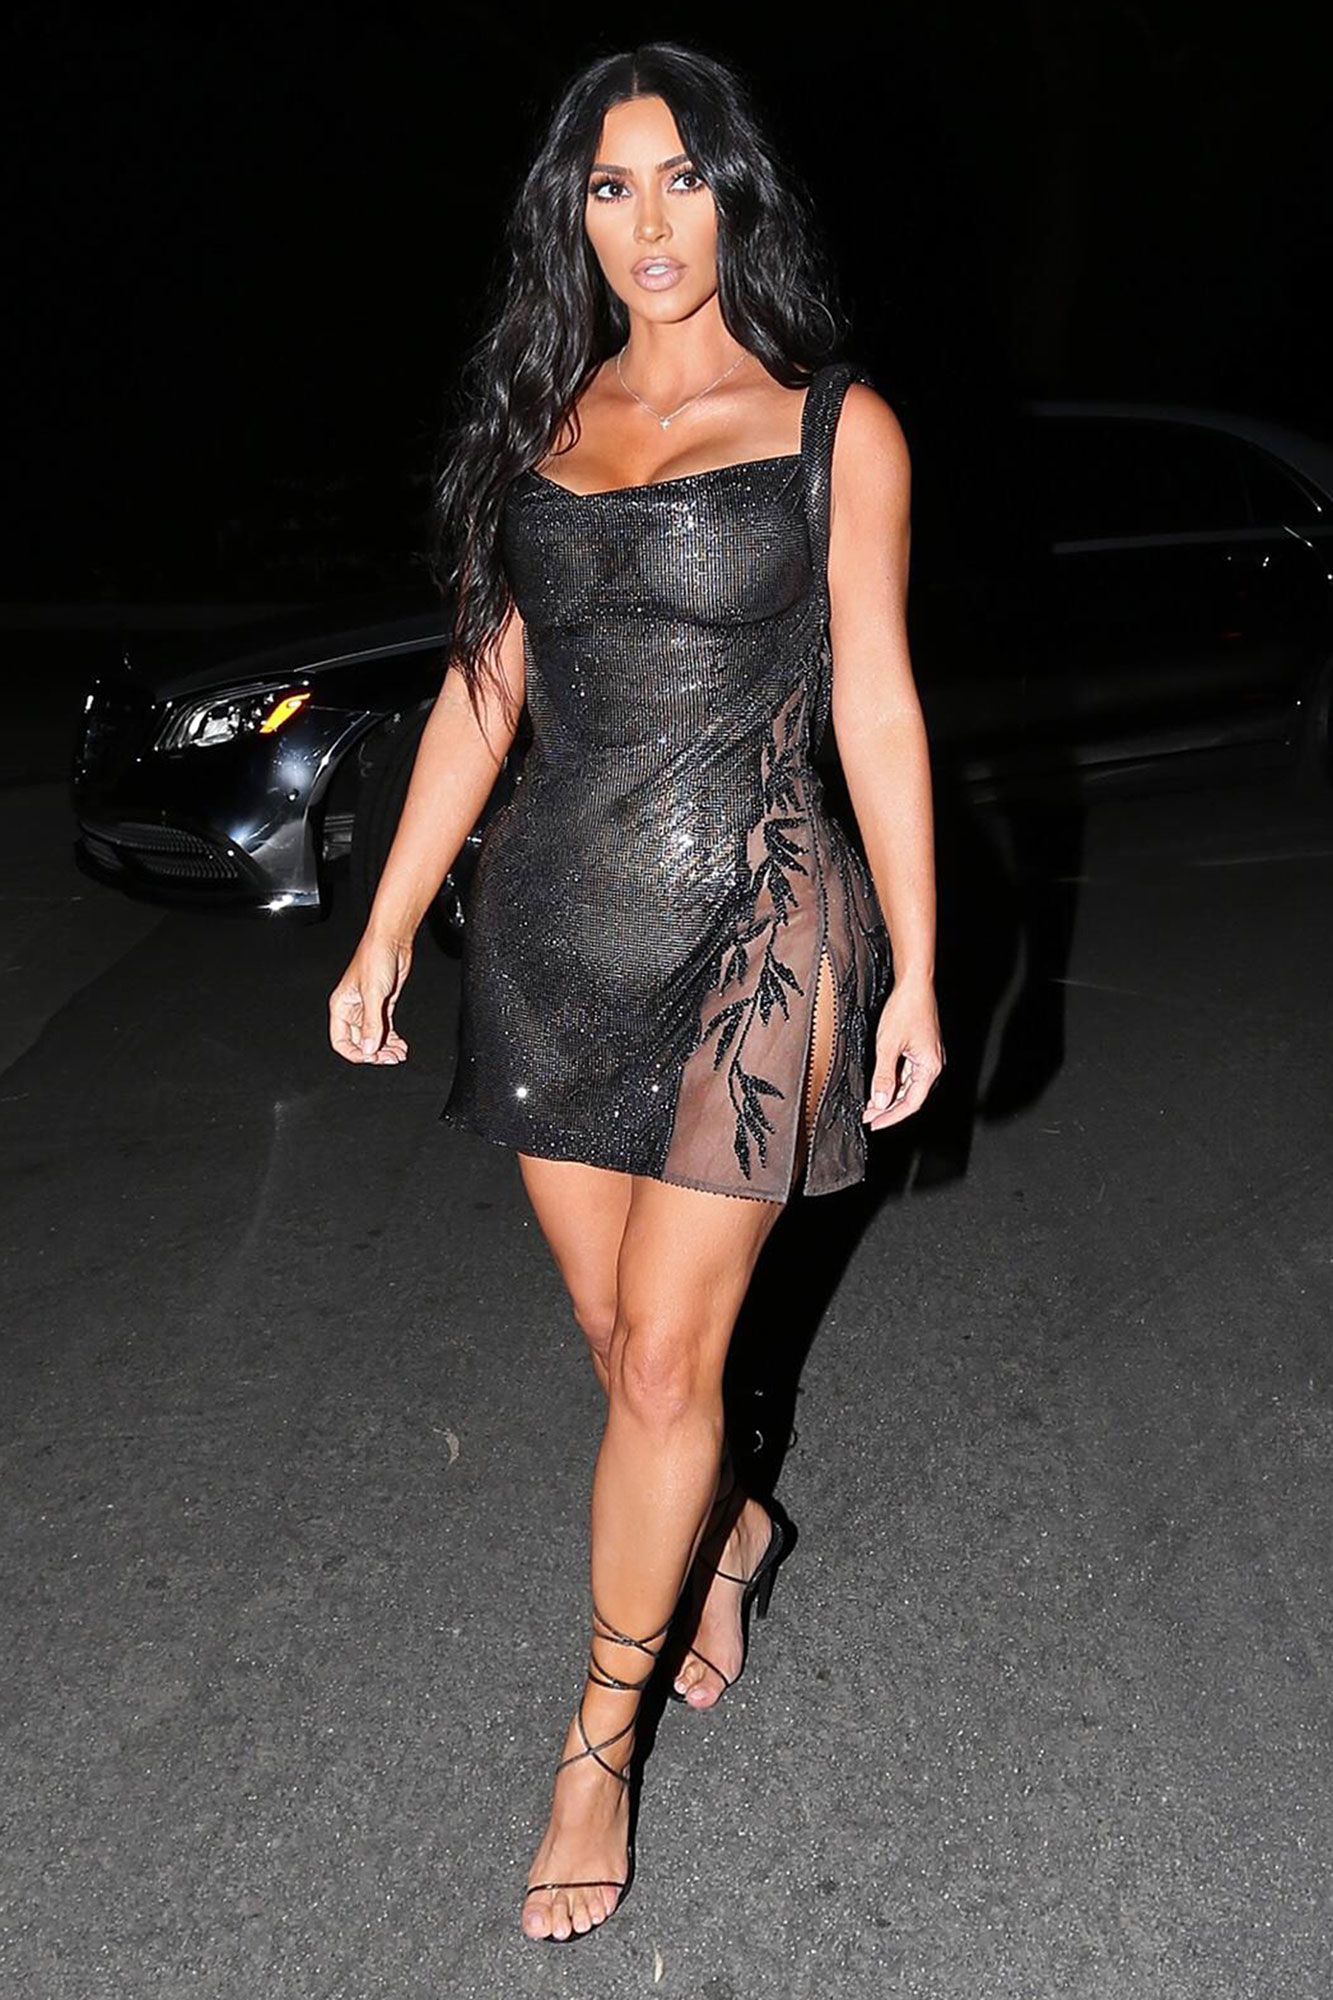 Kim Kardashian stops at a gas station before heading to sister Kourtney's 40th Birthday bash in L.A